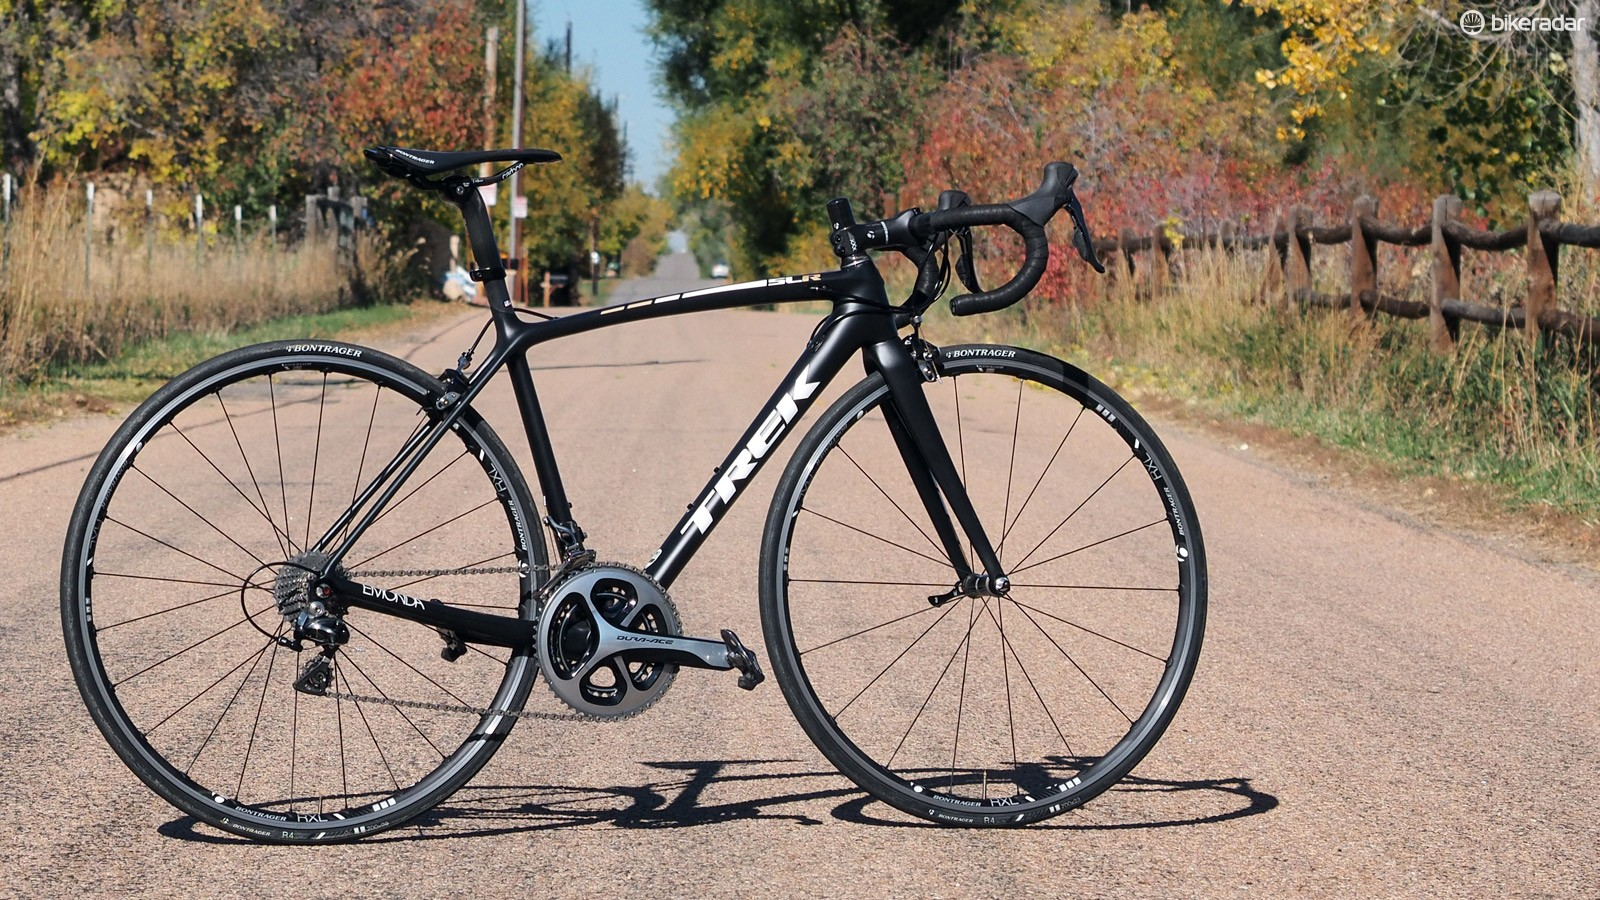 The new Trek Emonda SLR chassis is awesomely light and snappy but its very firm ride means you'll likely want to limit longer rides to smooth pavement